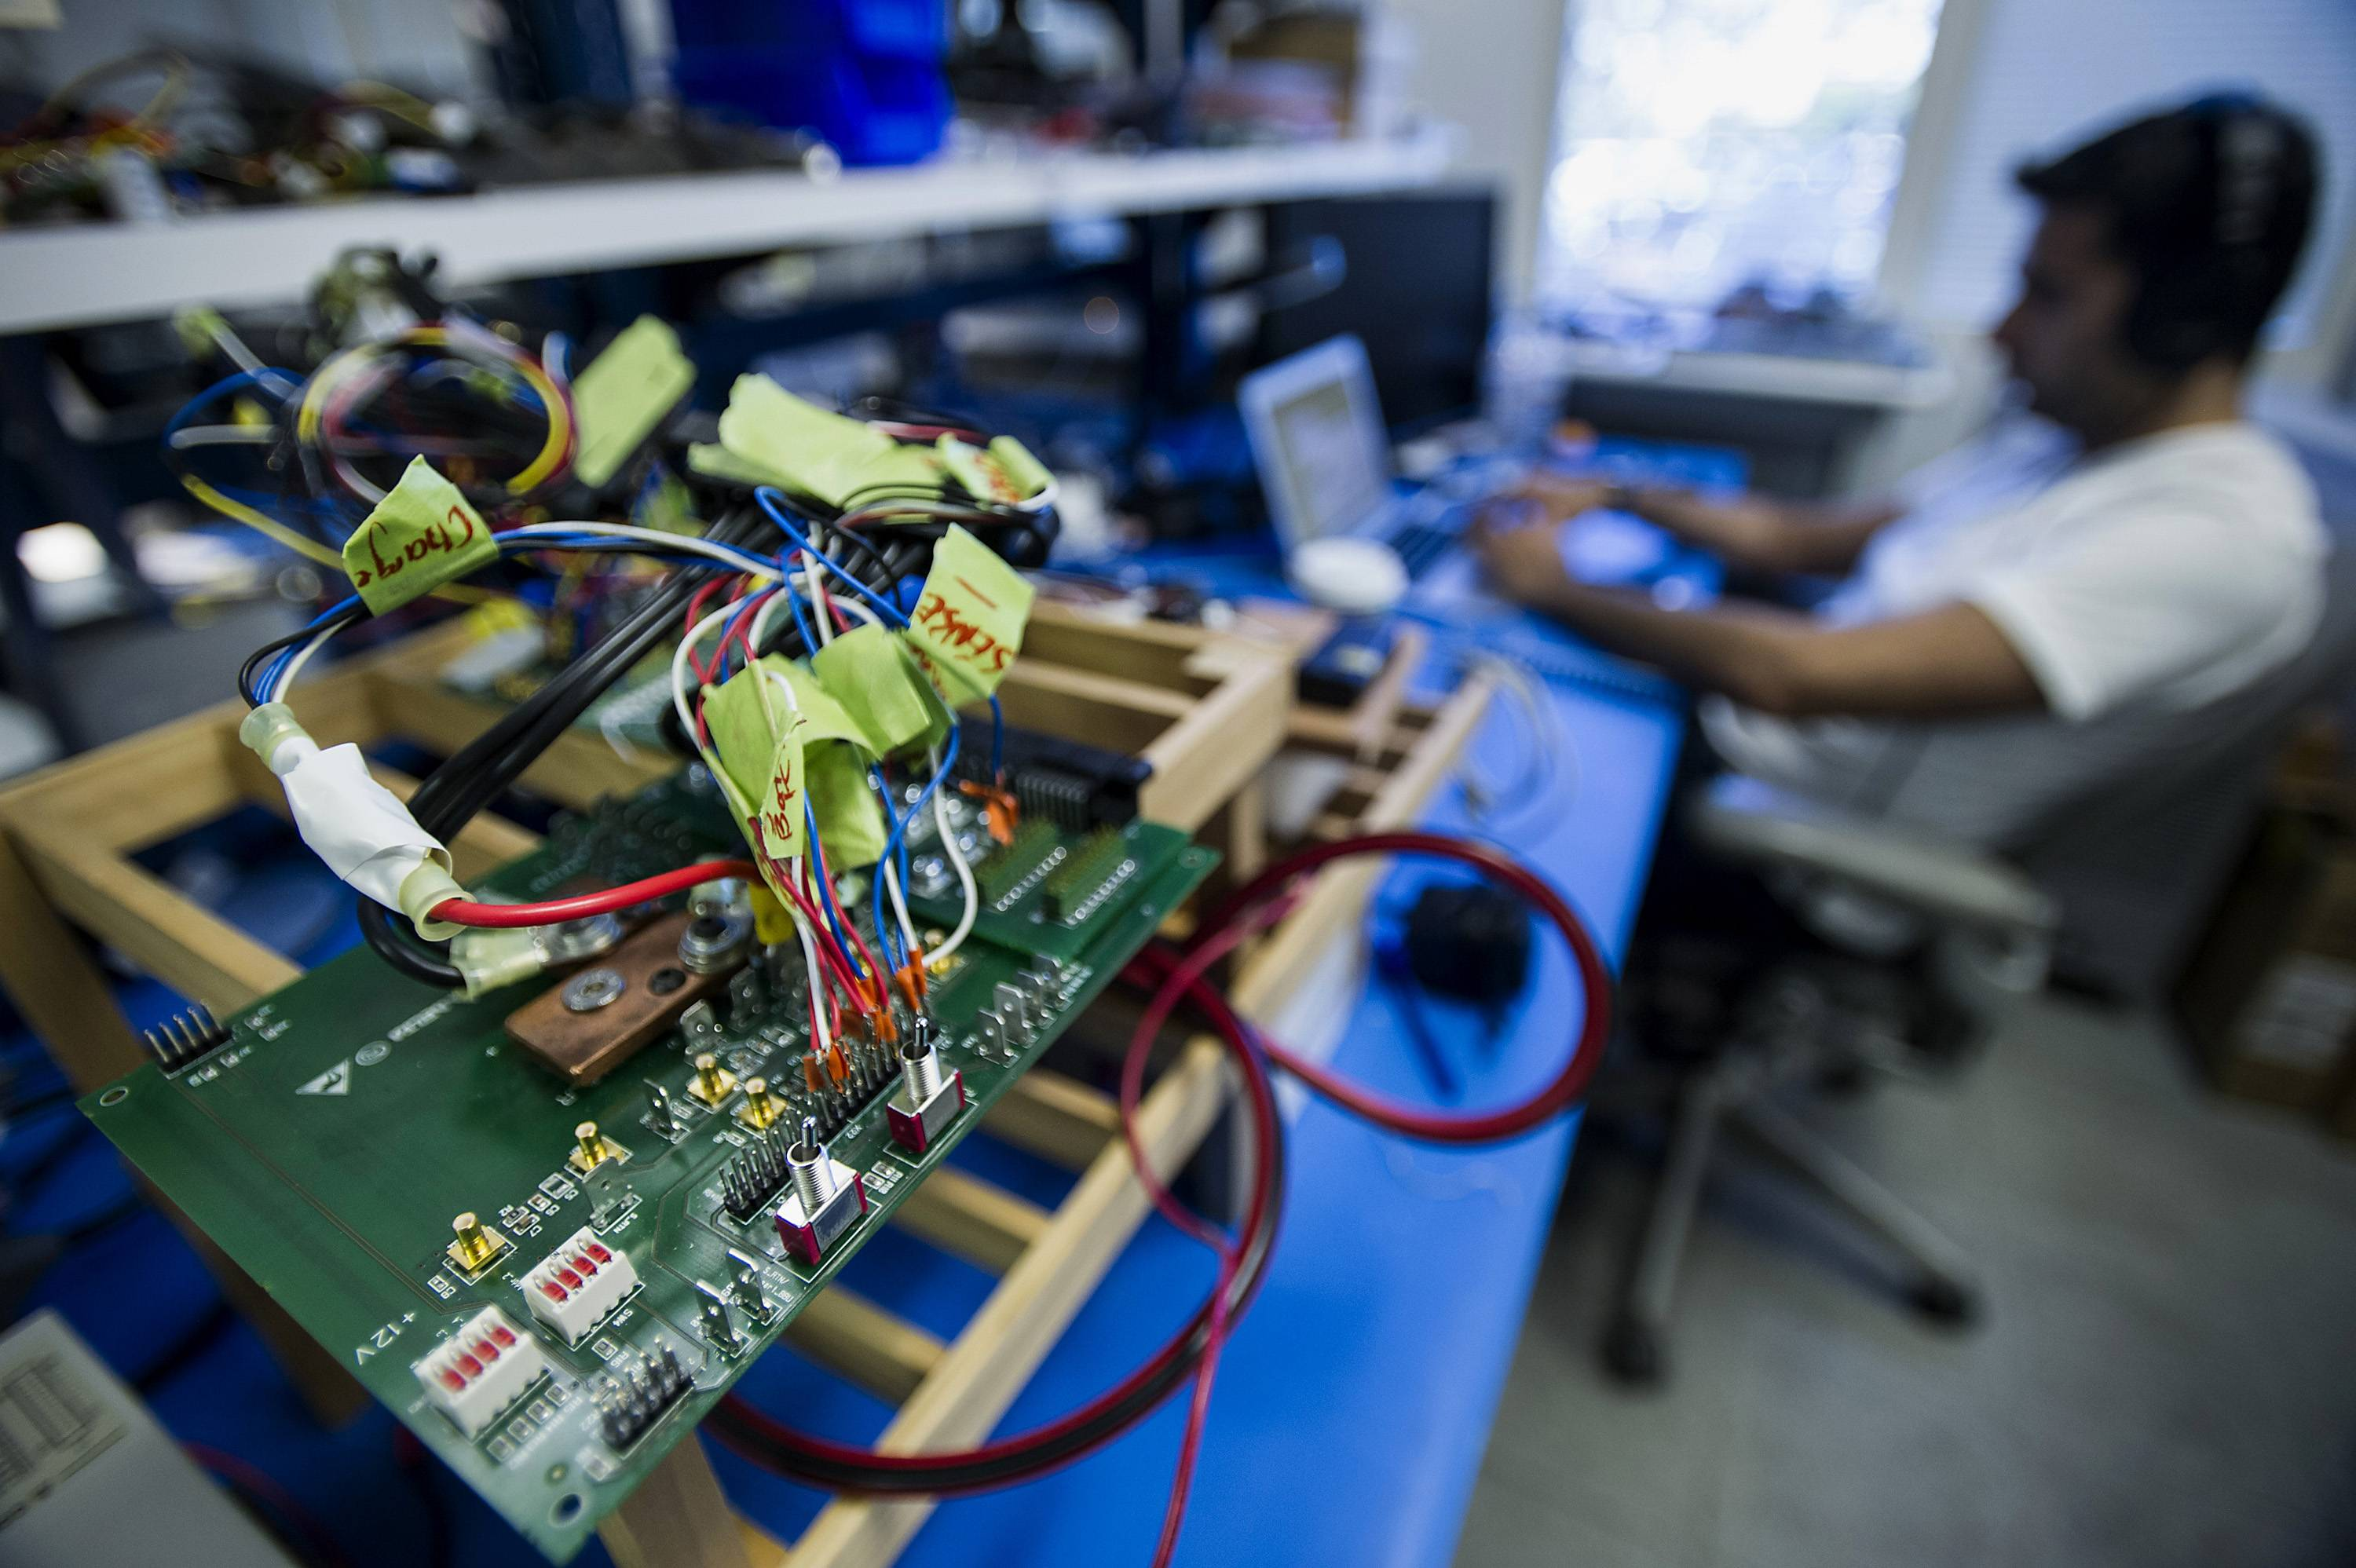 A technician works on a computer Monday while testing servers at the Facebook Inc. hardware labs in Menlo Park, Calif.